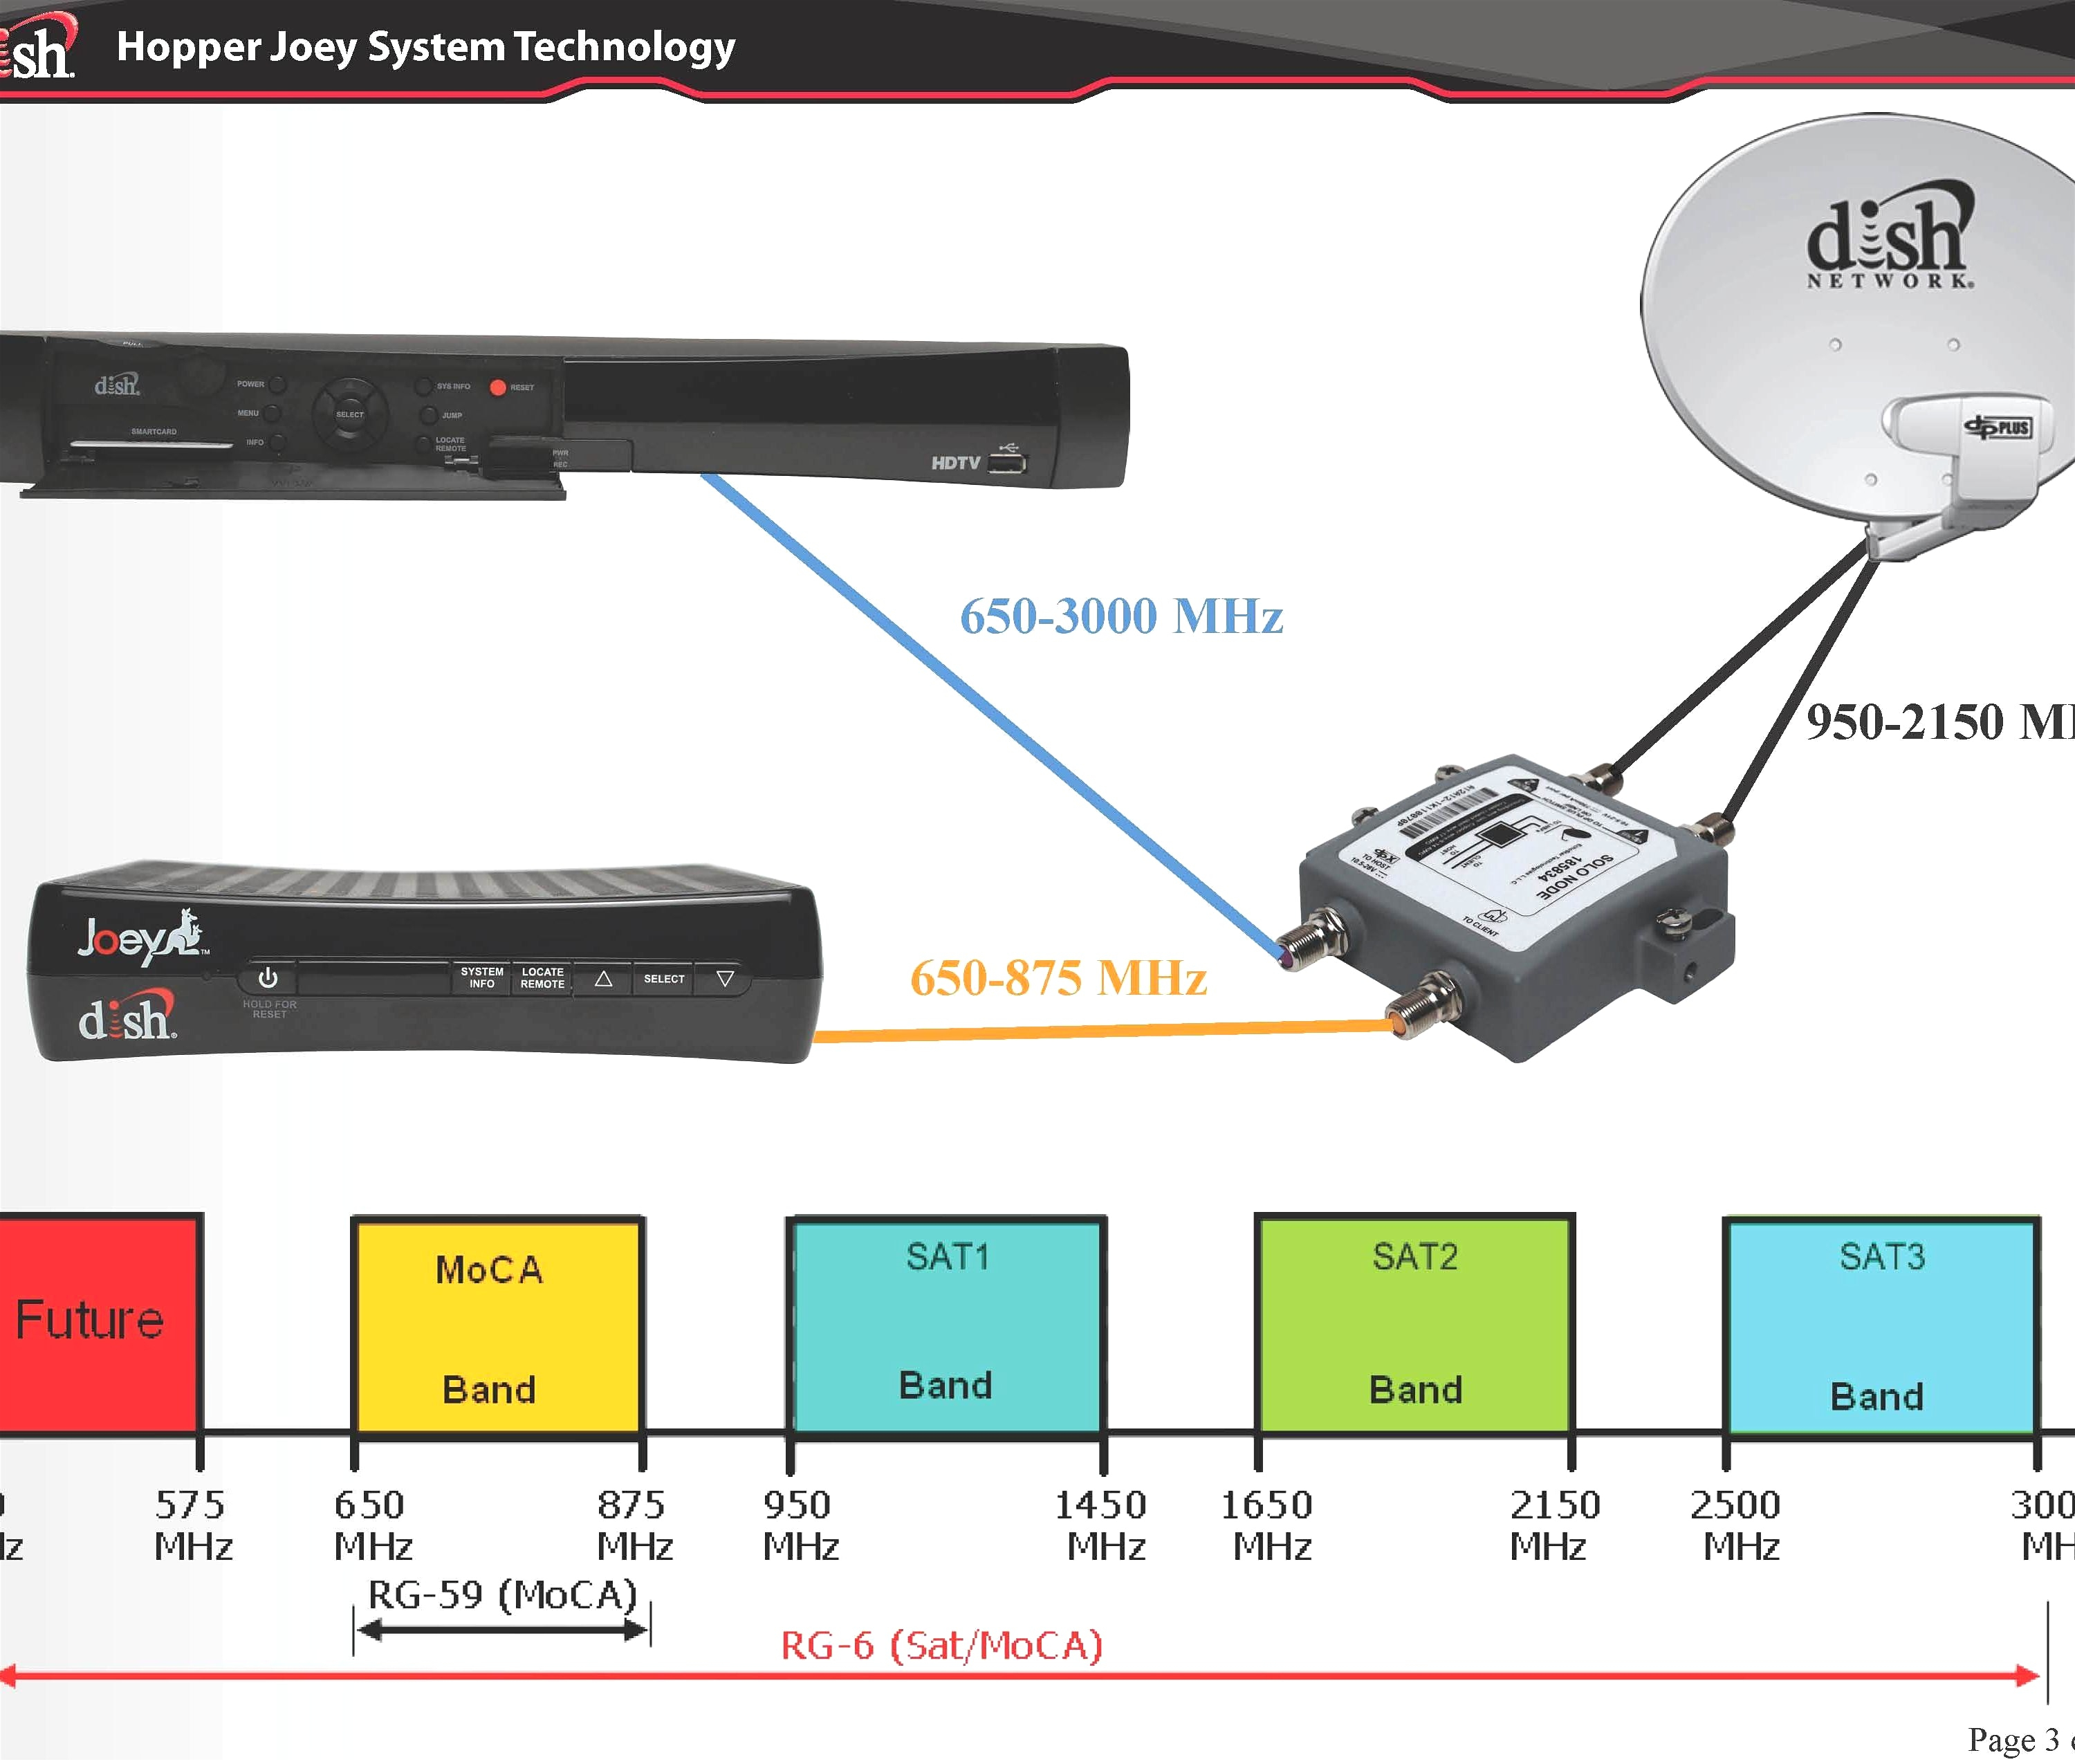 Dish Network Wiring Diagram Td | Wiring Library - Dish Network Satellite Wiring Diagram